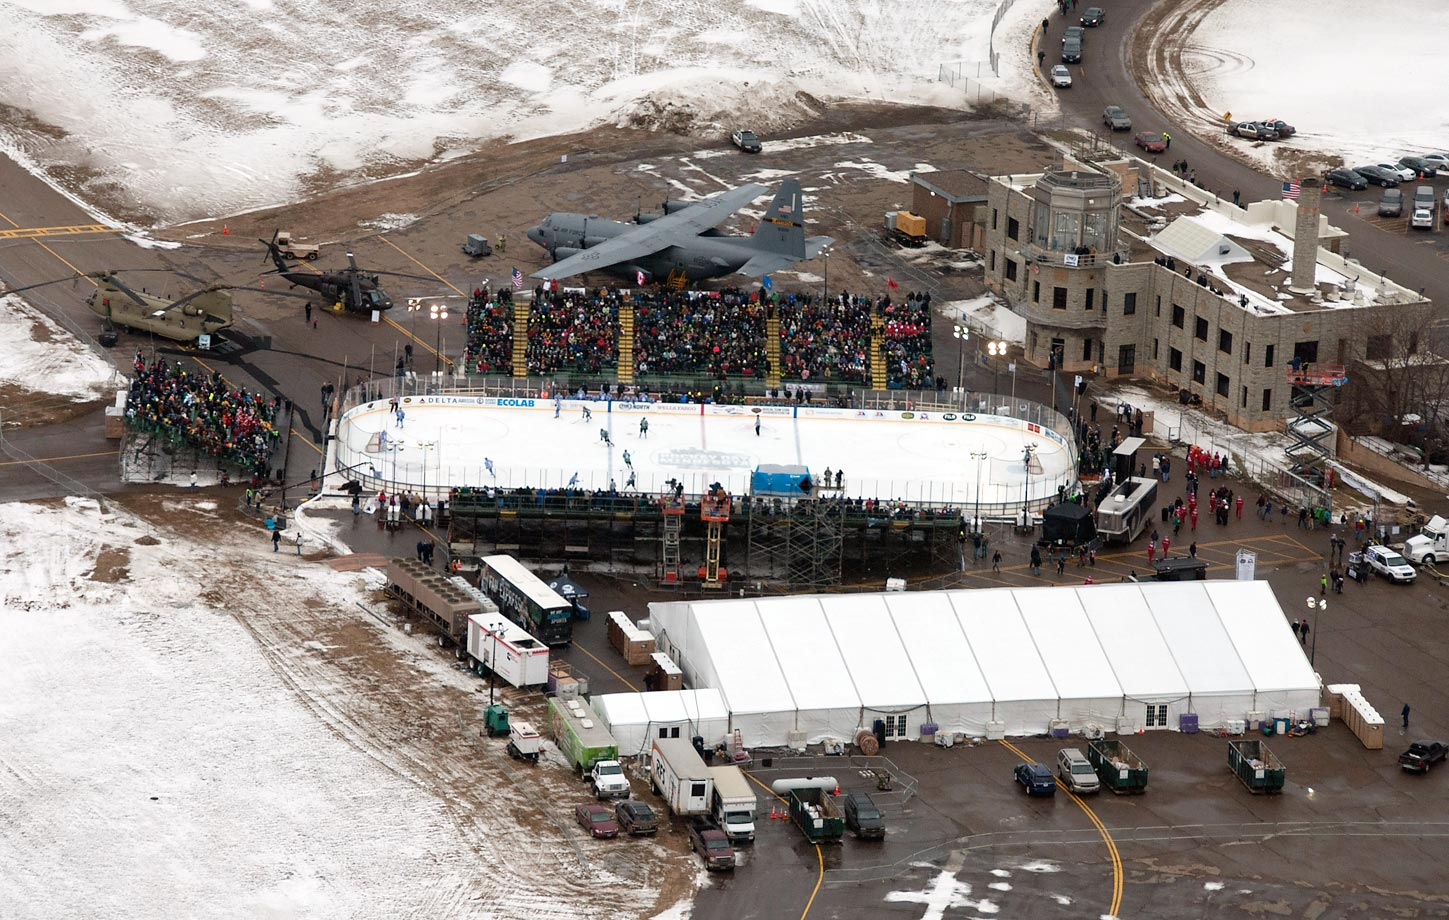 As part of Hockey Day Minnesota, an outdoor ice rink was built on an active airport tarmac for the first time. High school students played on the rink while a military unit from the airport on active duty in Kuwait watched from overseas. The event took place in St. Paul, Minn.